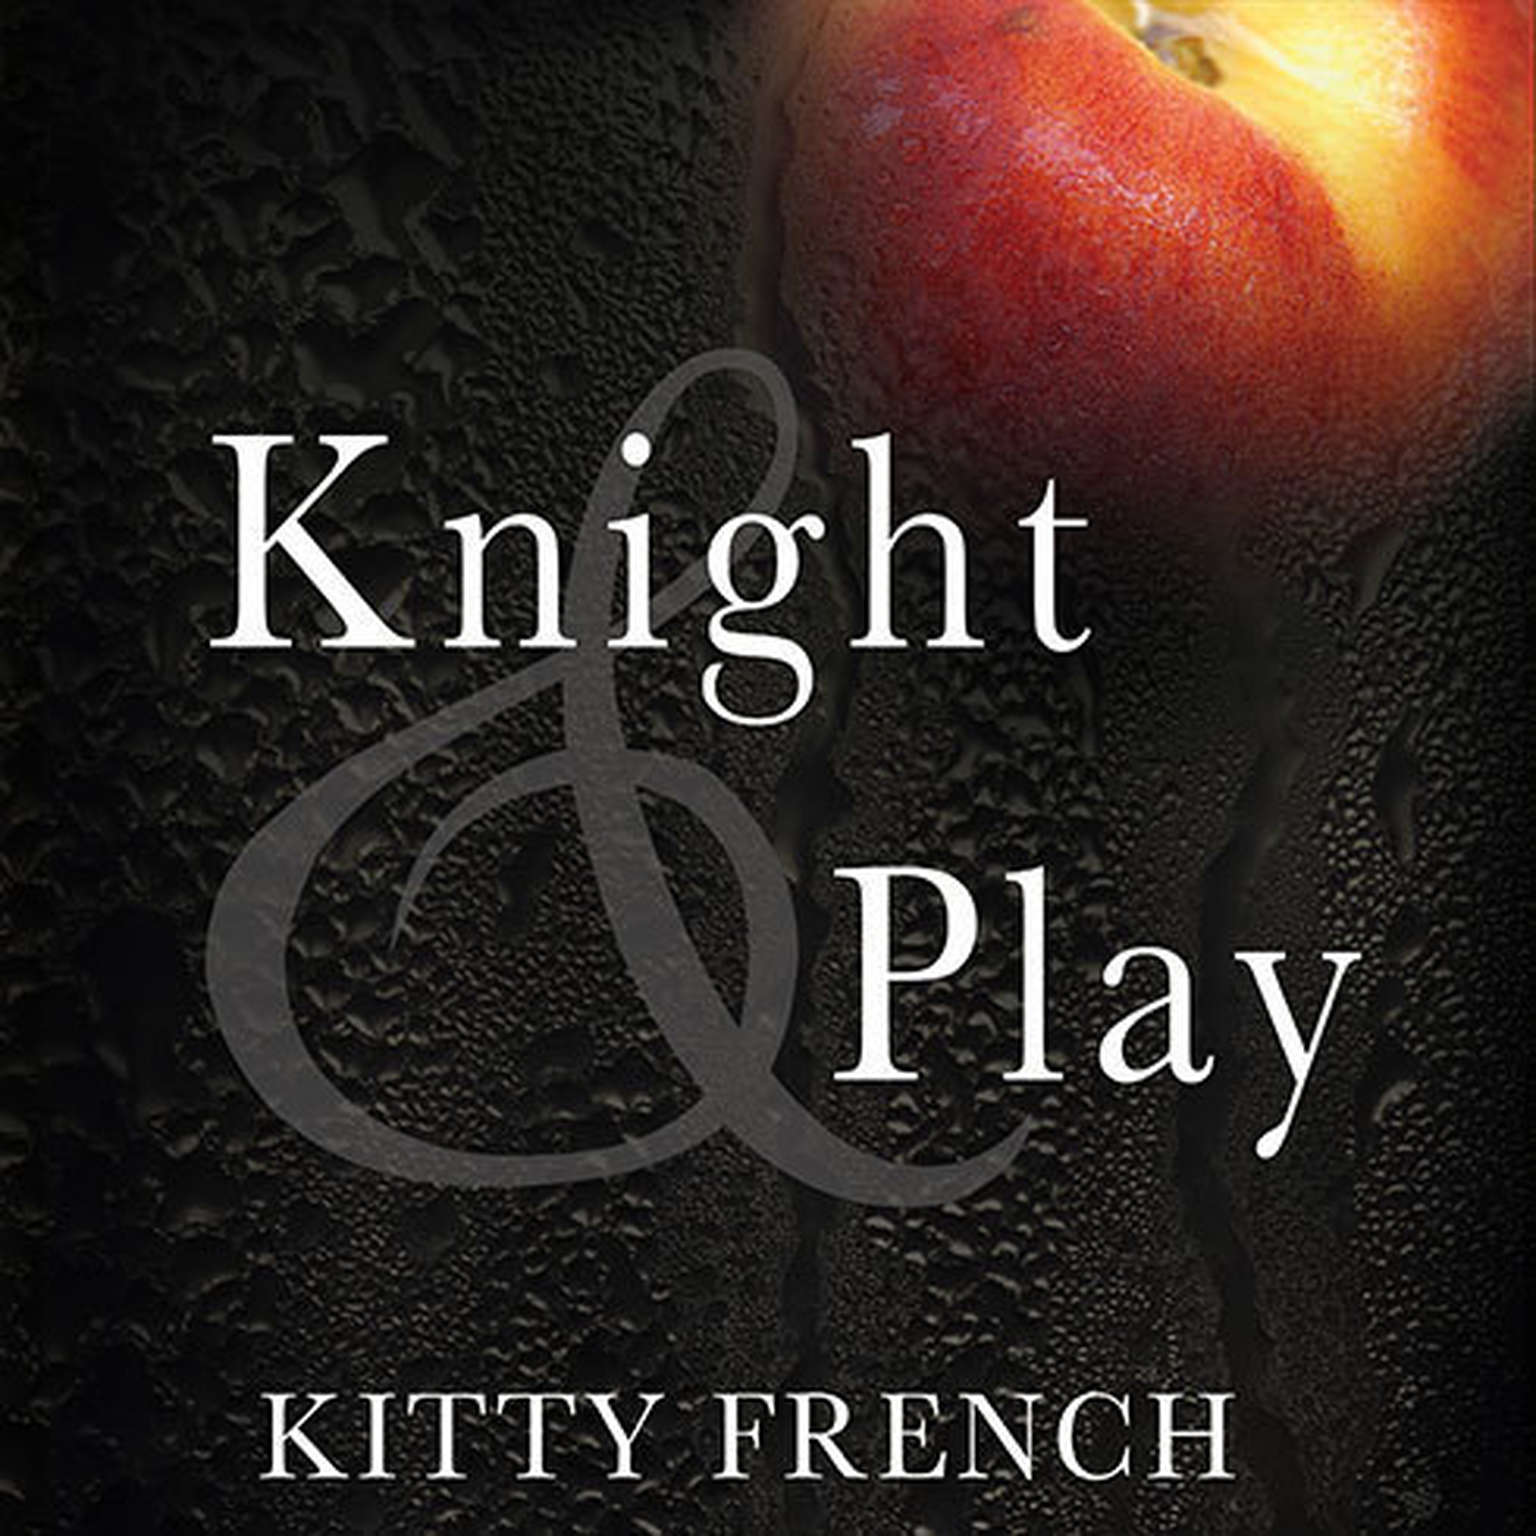 Printable Knight and Play Audiobook Cover Art